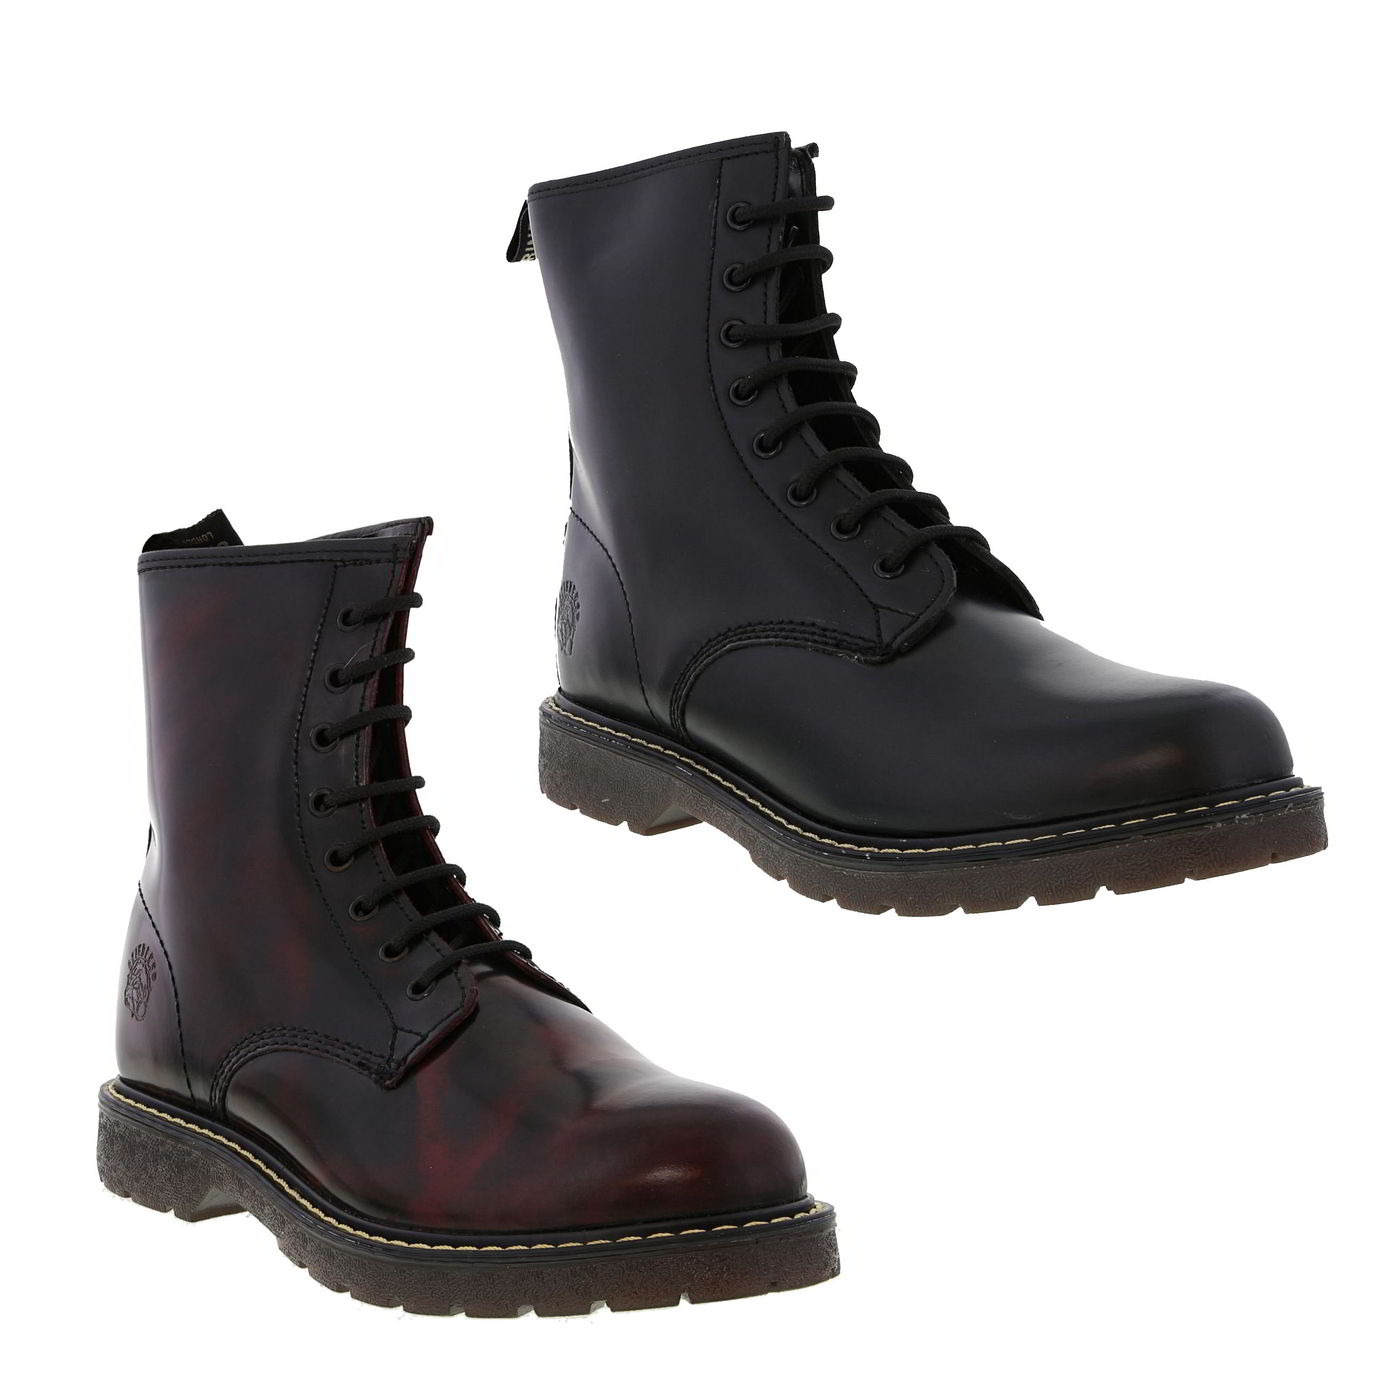 80fe432babb Details about Grinders Cedric Mens Black Red Leather 8 Eye Air Cushion  Ankle Boots Size 7-12